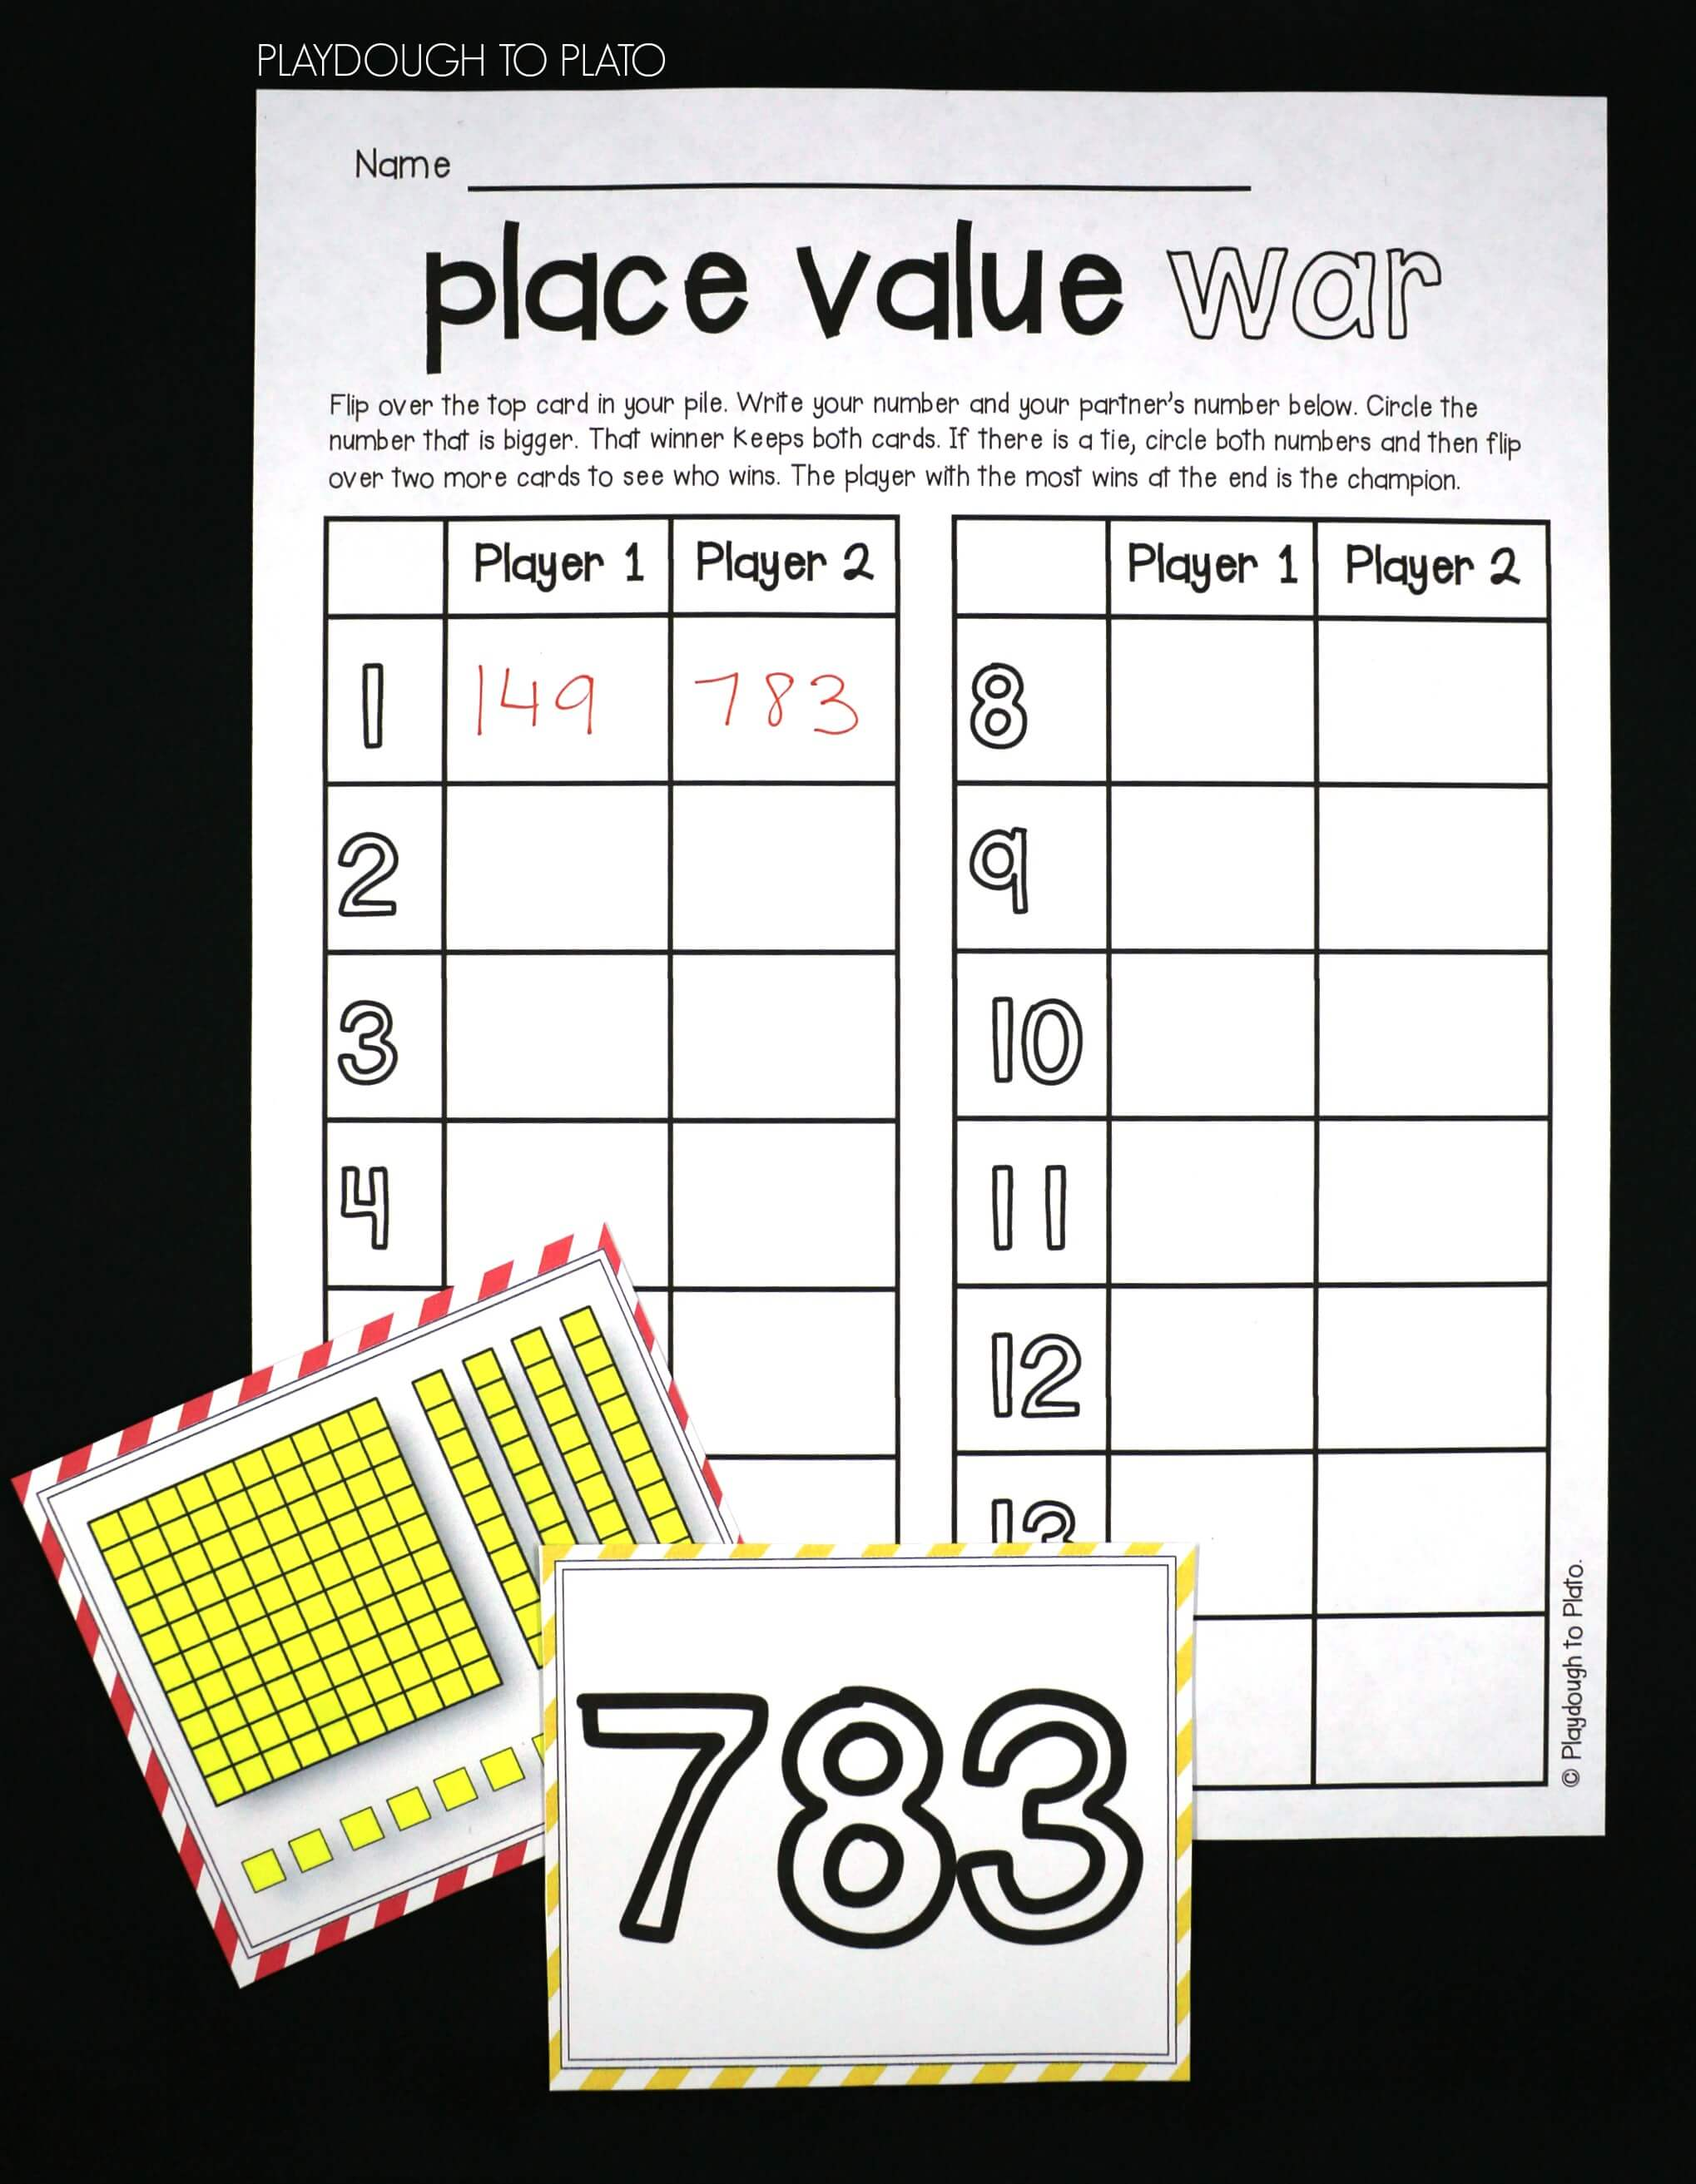 Place value war playdough to plato fun place value game for kids nvjuhfo Image collections